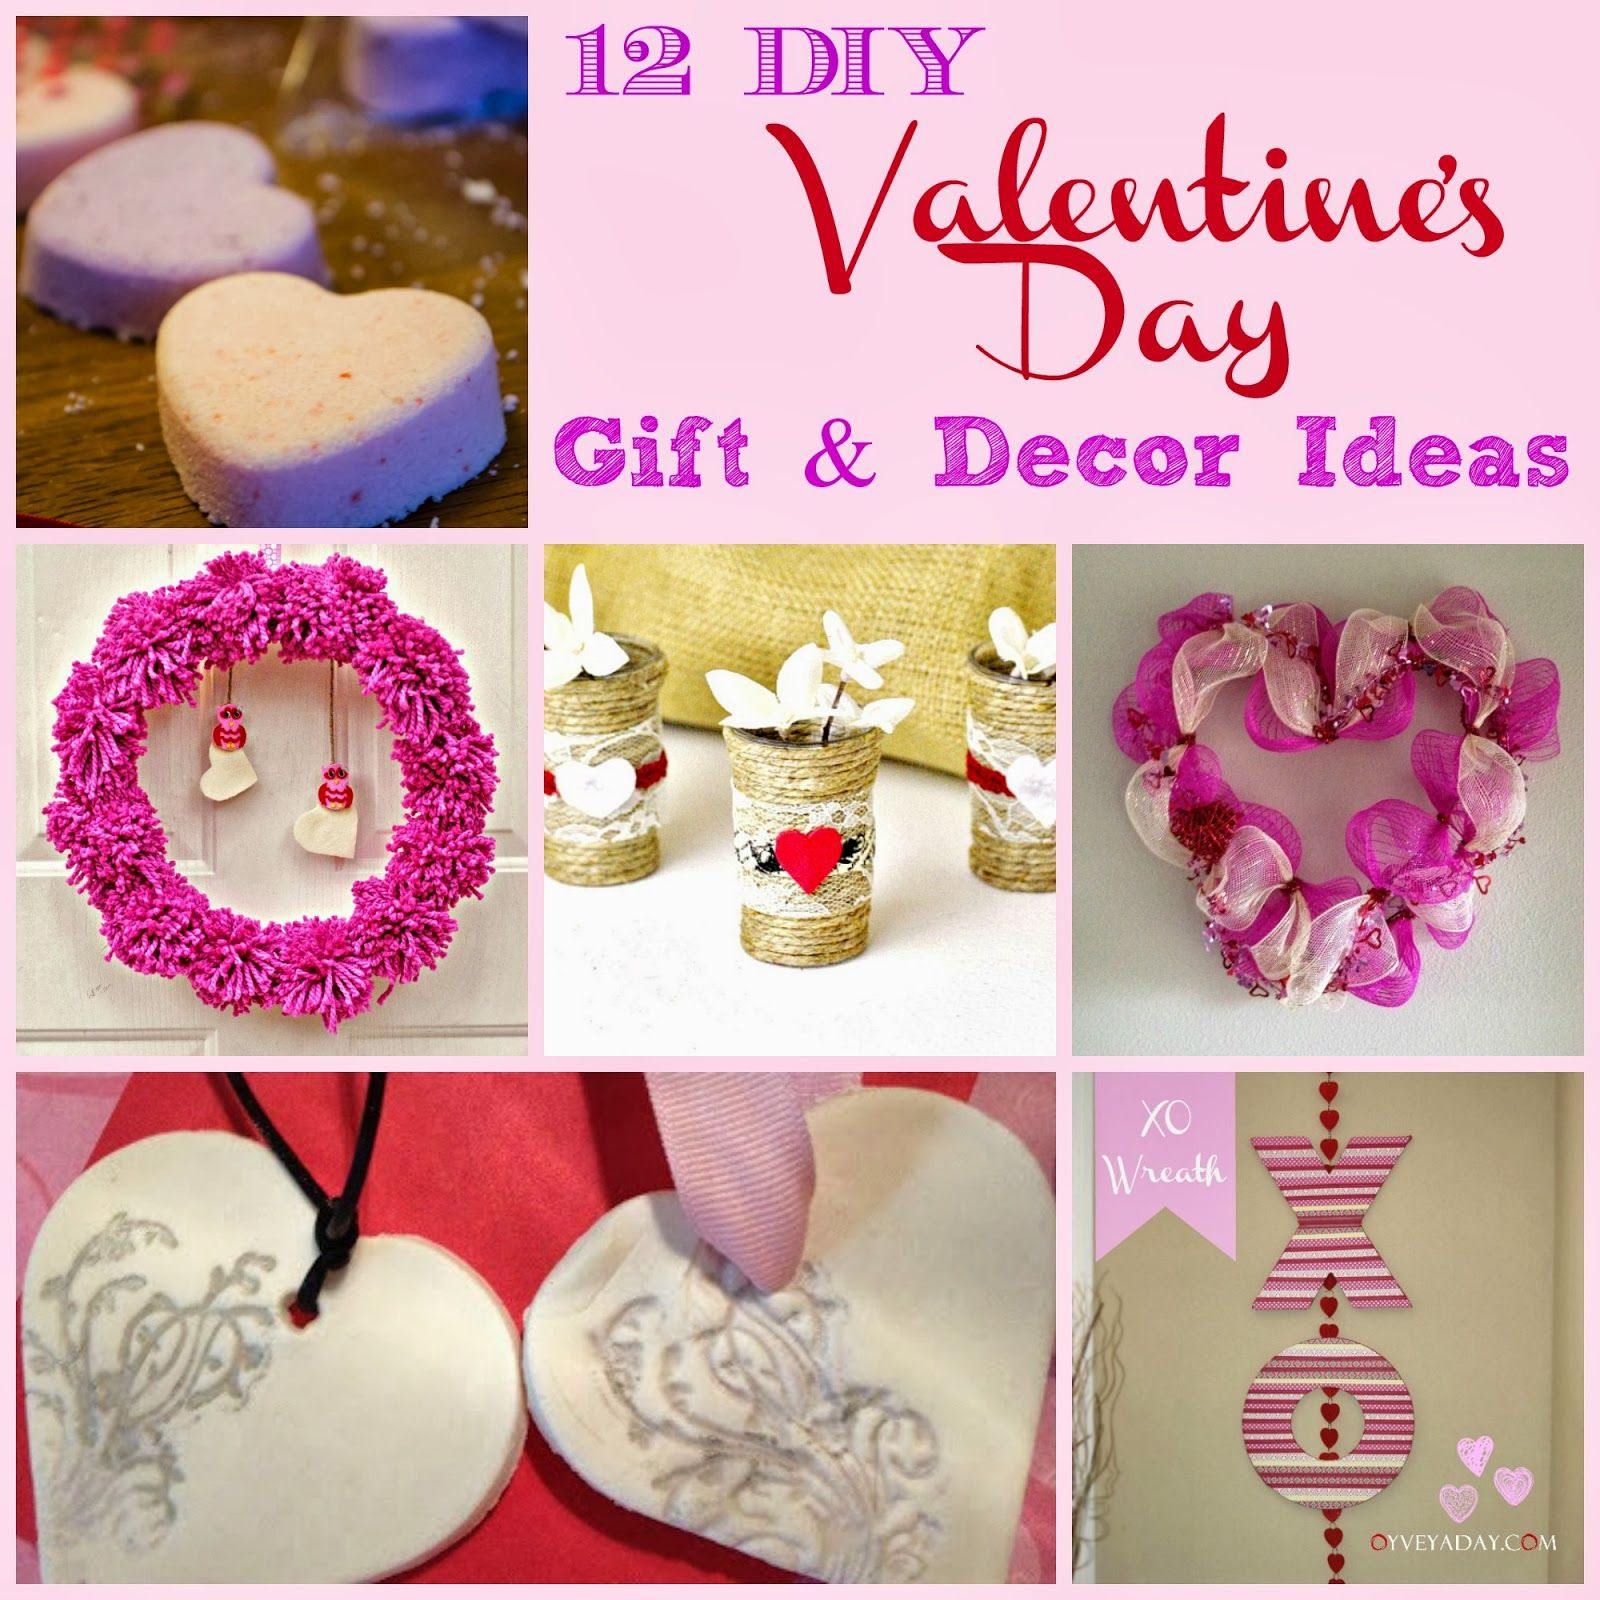 12 DIY Valentineu0027s Day Gift U0026 Decor Ideas   Outnumbered ...